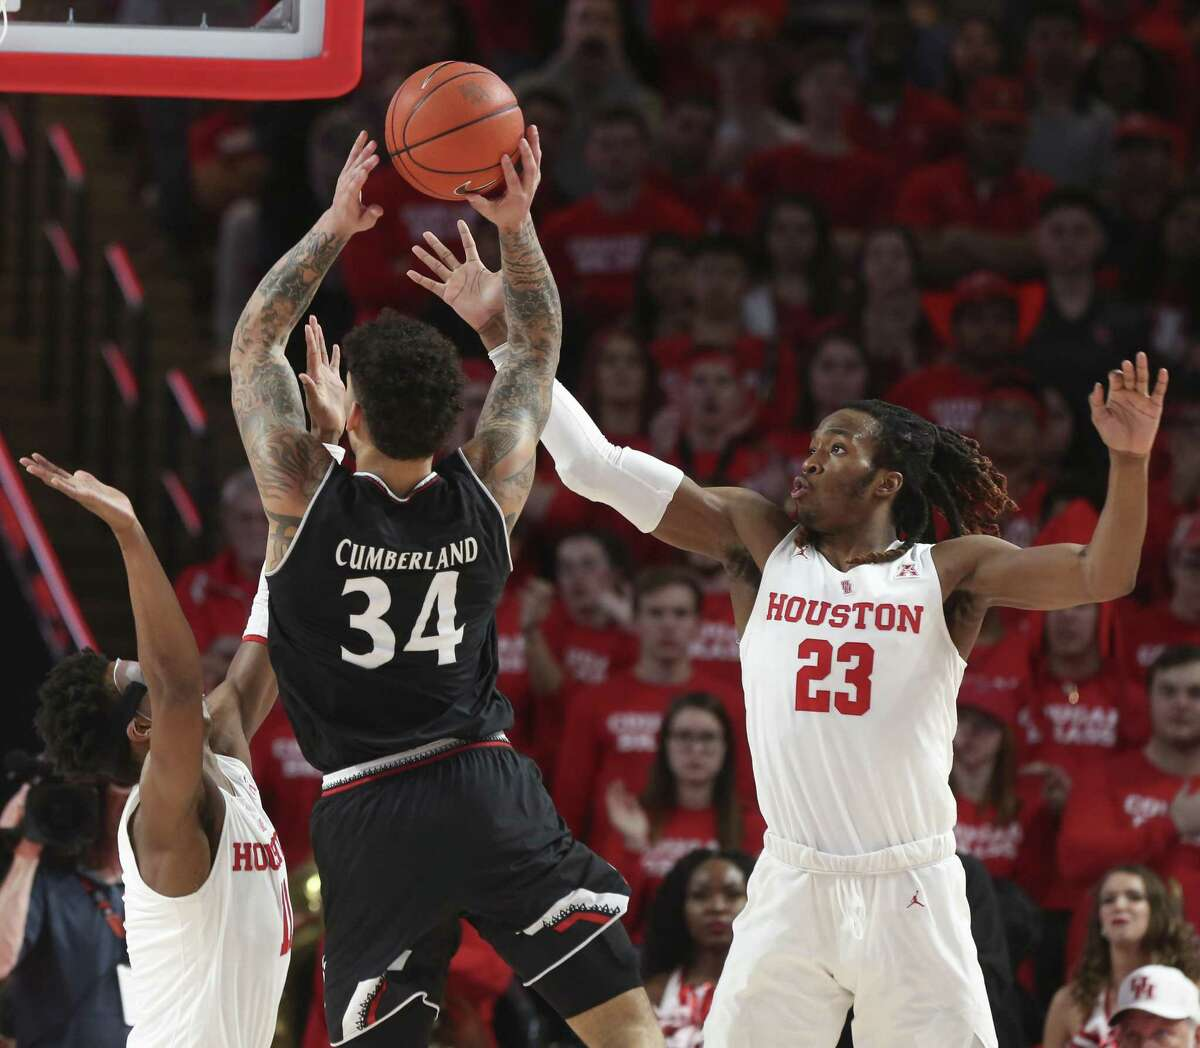 Houston Cougars players Nate Hinton (11) and Cedrick Alley Jr. (23) try to stop Cincinnati Bearcats guard Jarron Cumberland (34) during the second half of the American Athletic Conference game at Fertitta Center on Sunday, Feb. 10, 2019, in Houston. The Houston Cougars defeated the Cincinnati Bearcats 65-58.